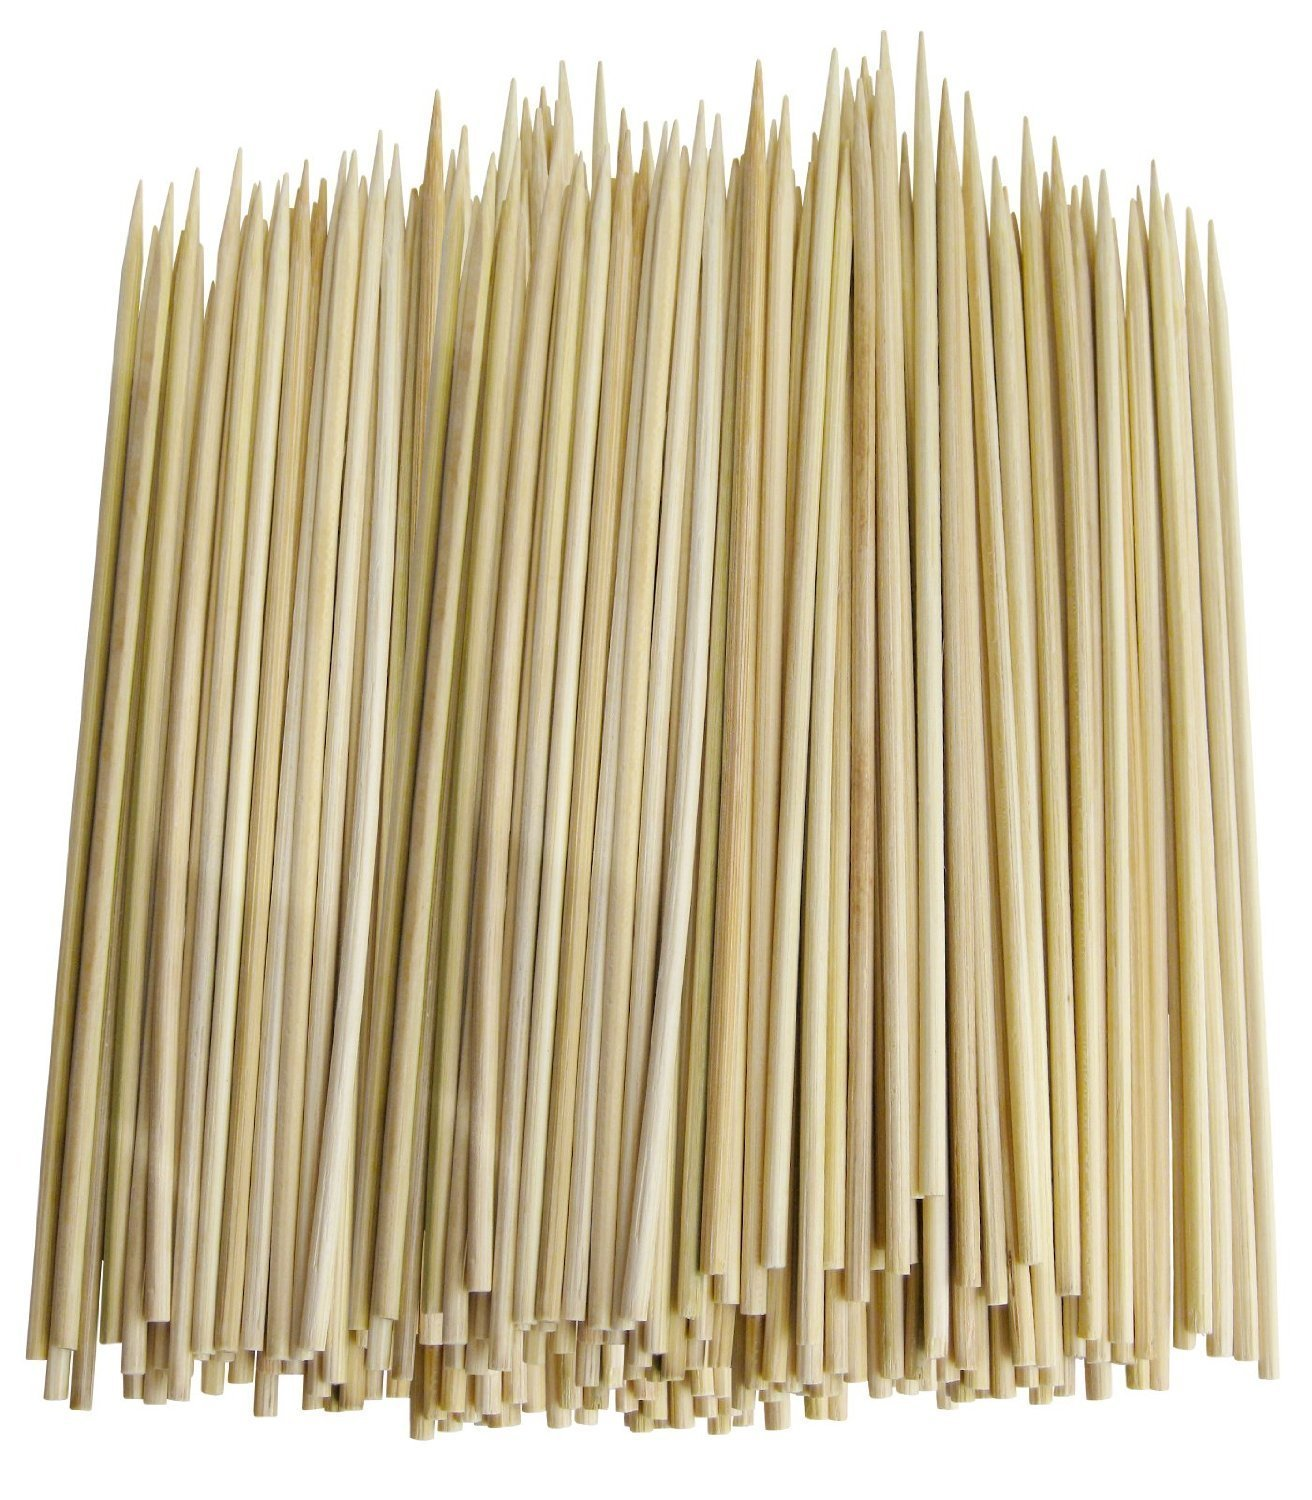 Pack of 300 Bamboo Skewers for Appetizers (4 Inch) SYNCHKG129924